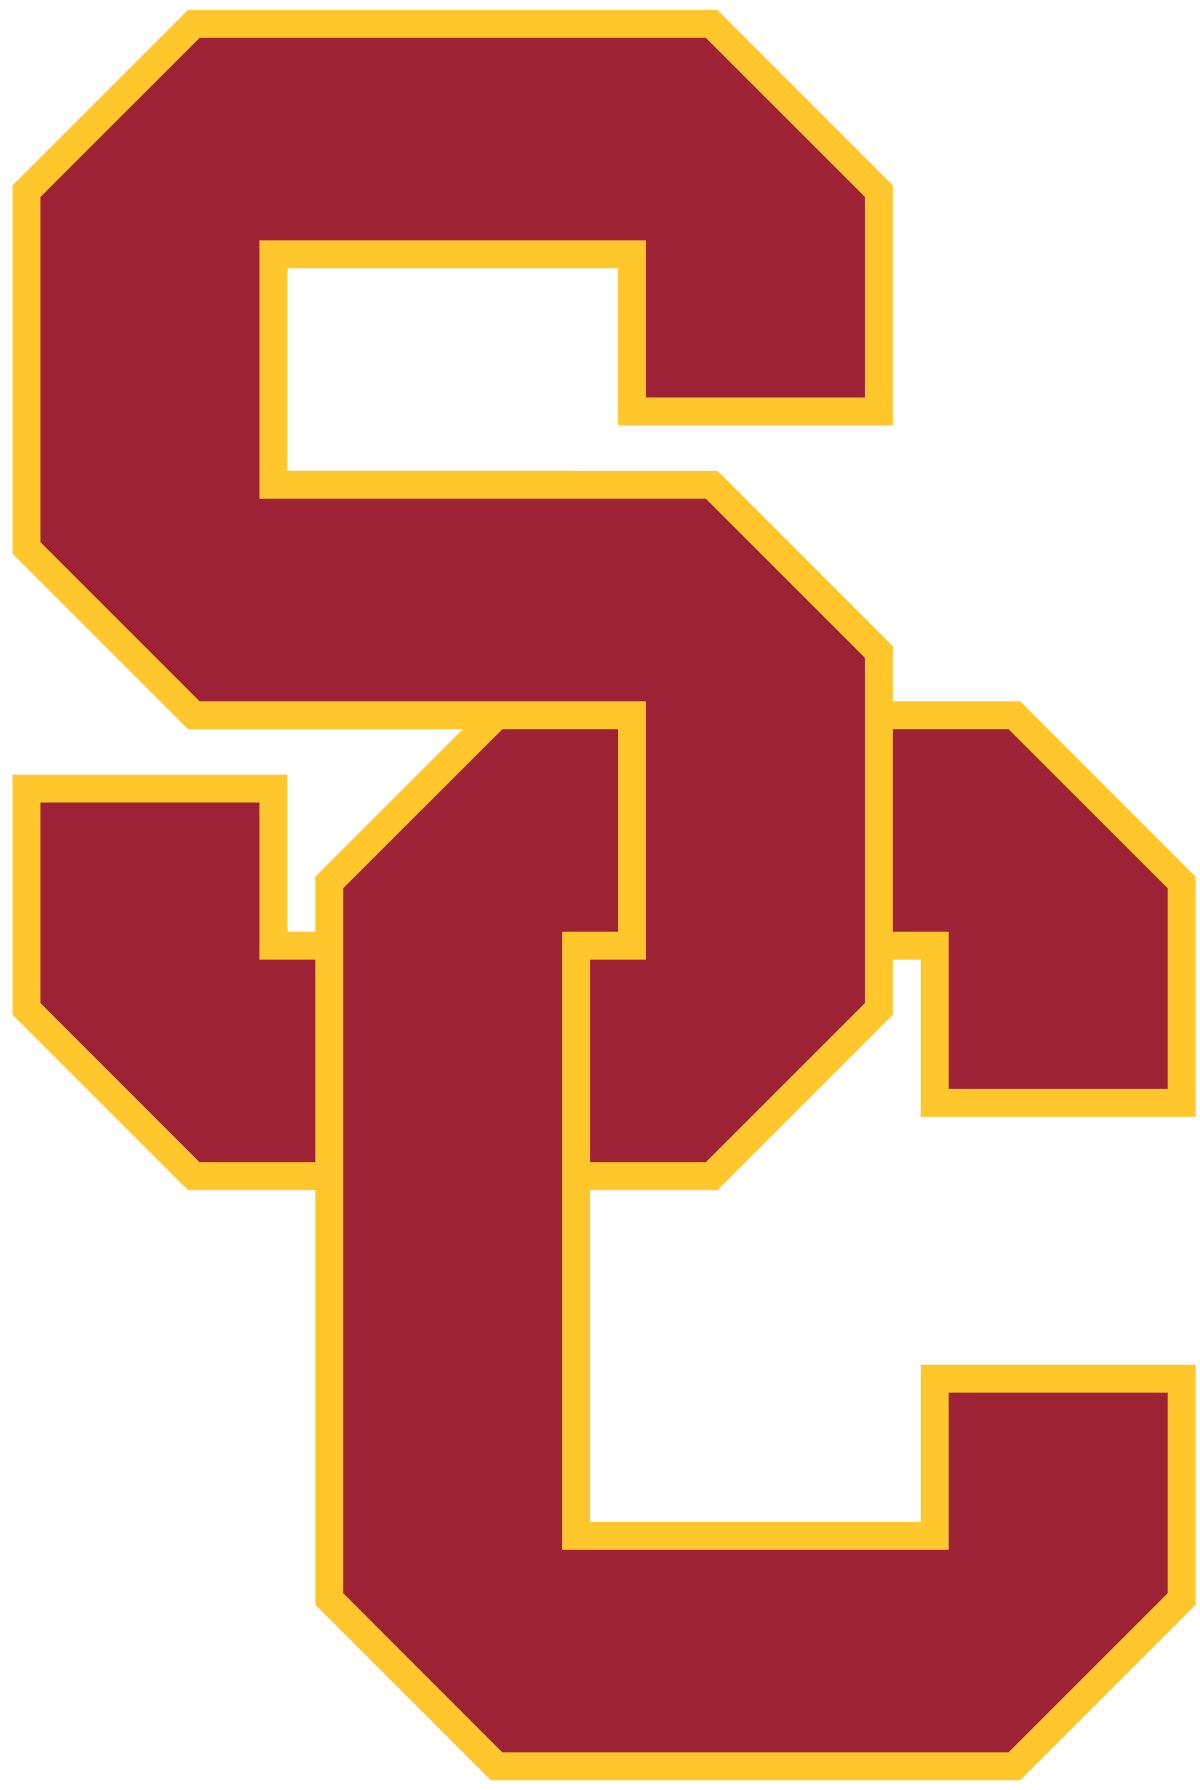 Football sack clipart graphic free download USC Trojans - Wikipedia graphic free download